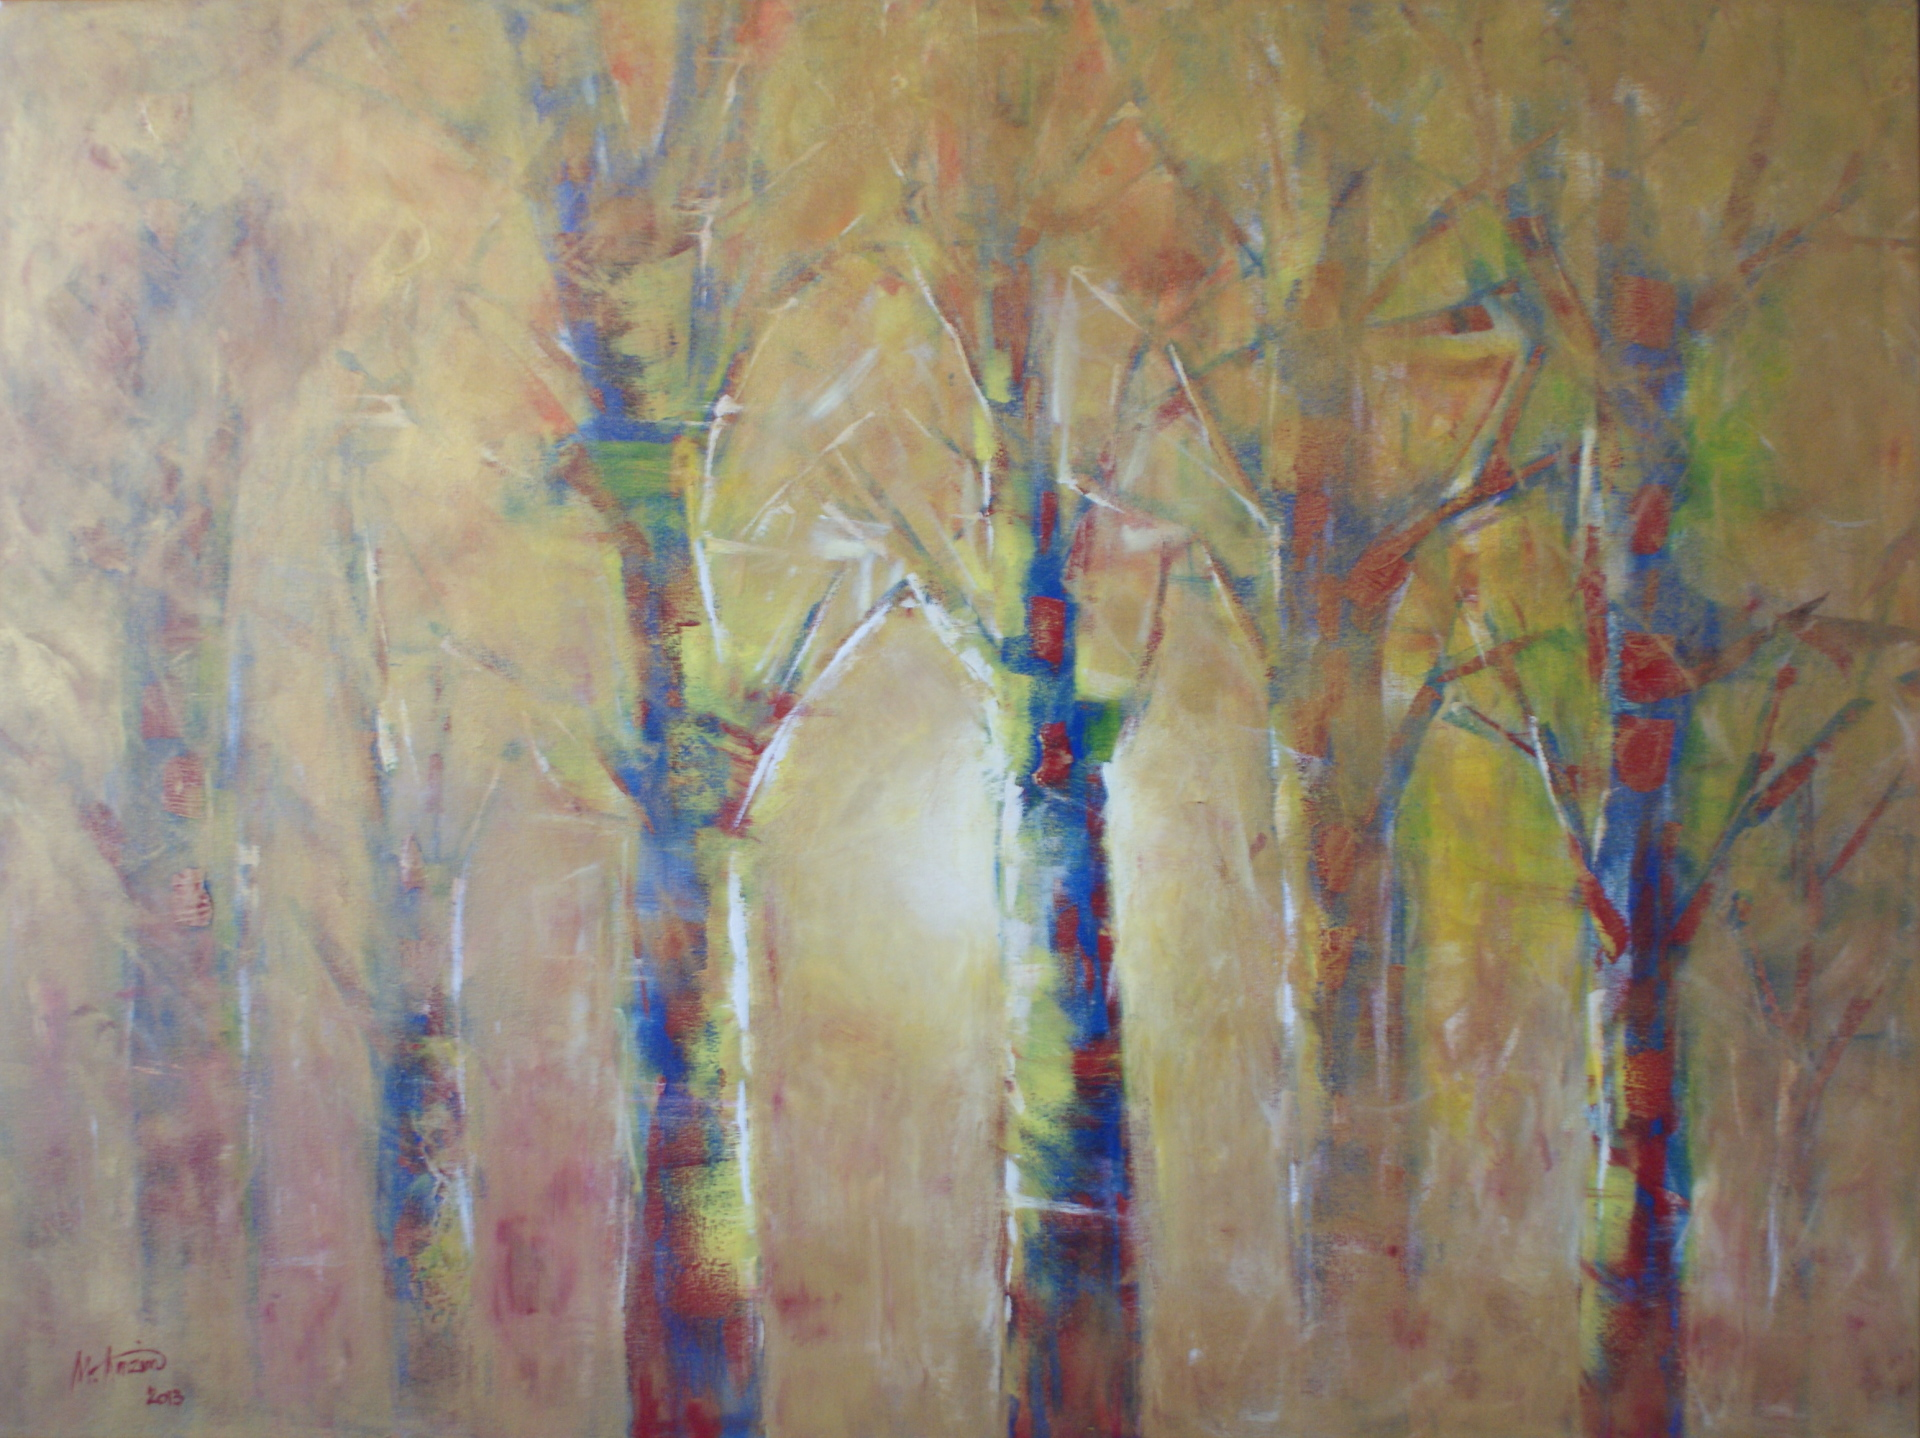 Enchanted Forest, 36x48, Acrylic on Canvas